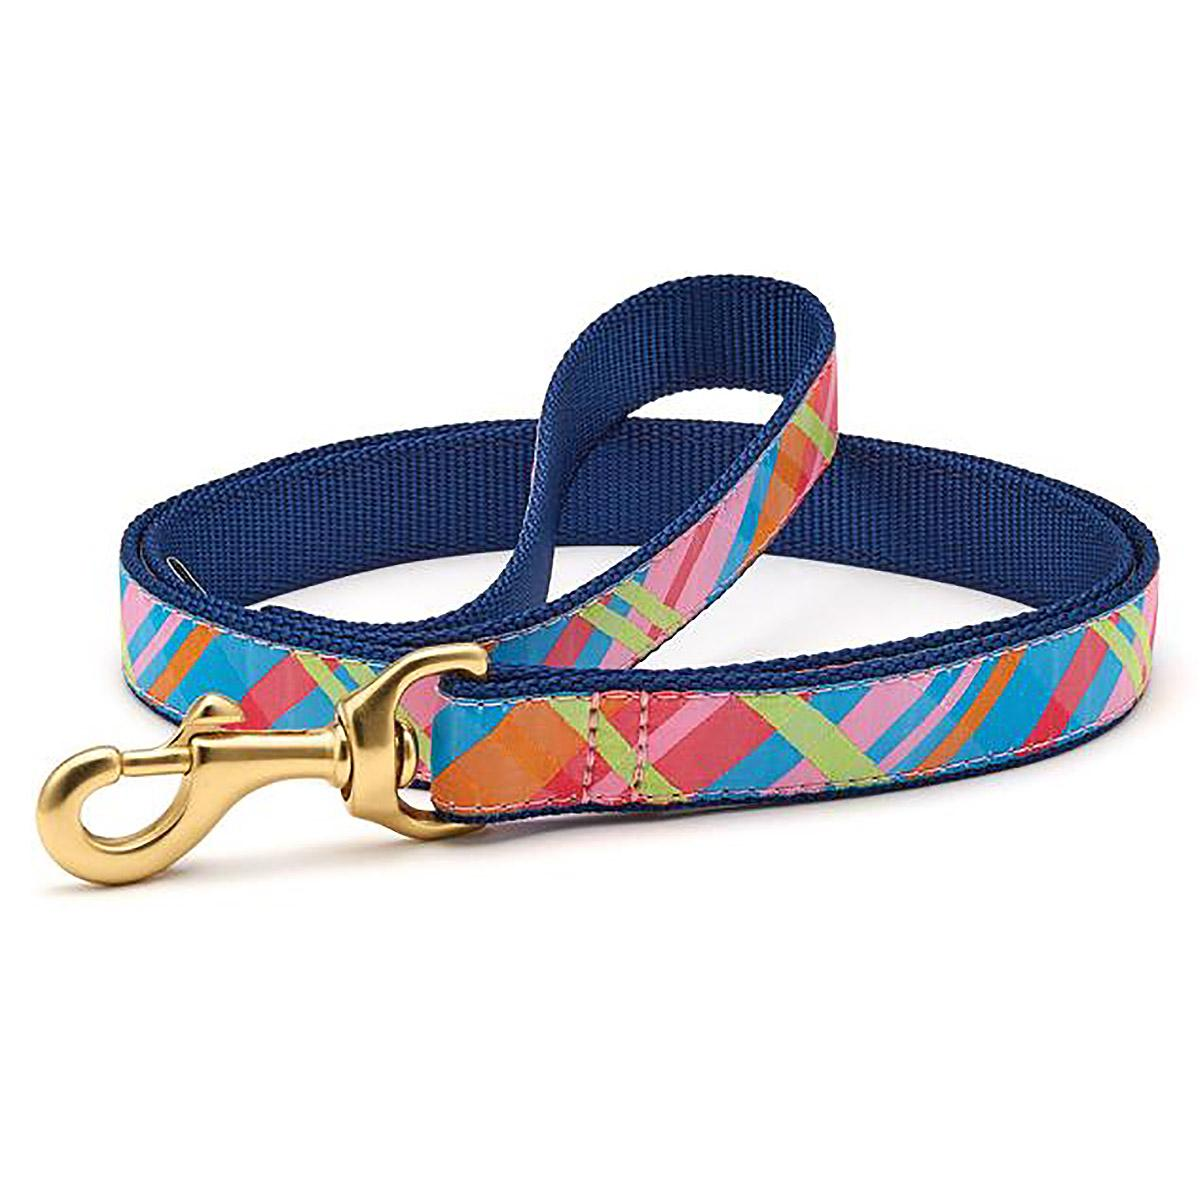 Pink Madras Dog Leash by Up Country